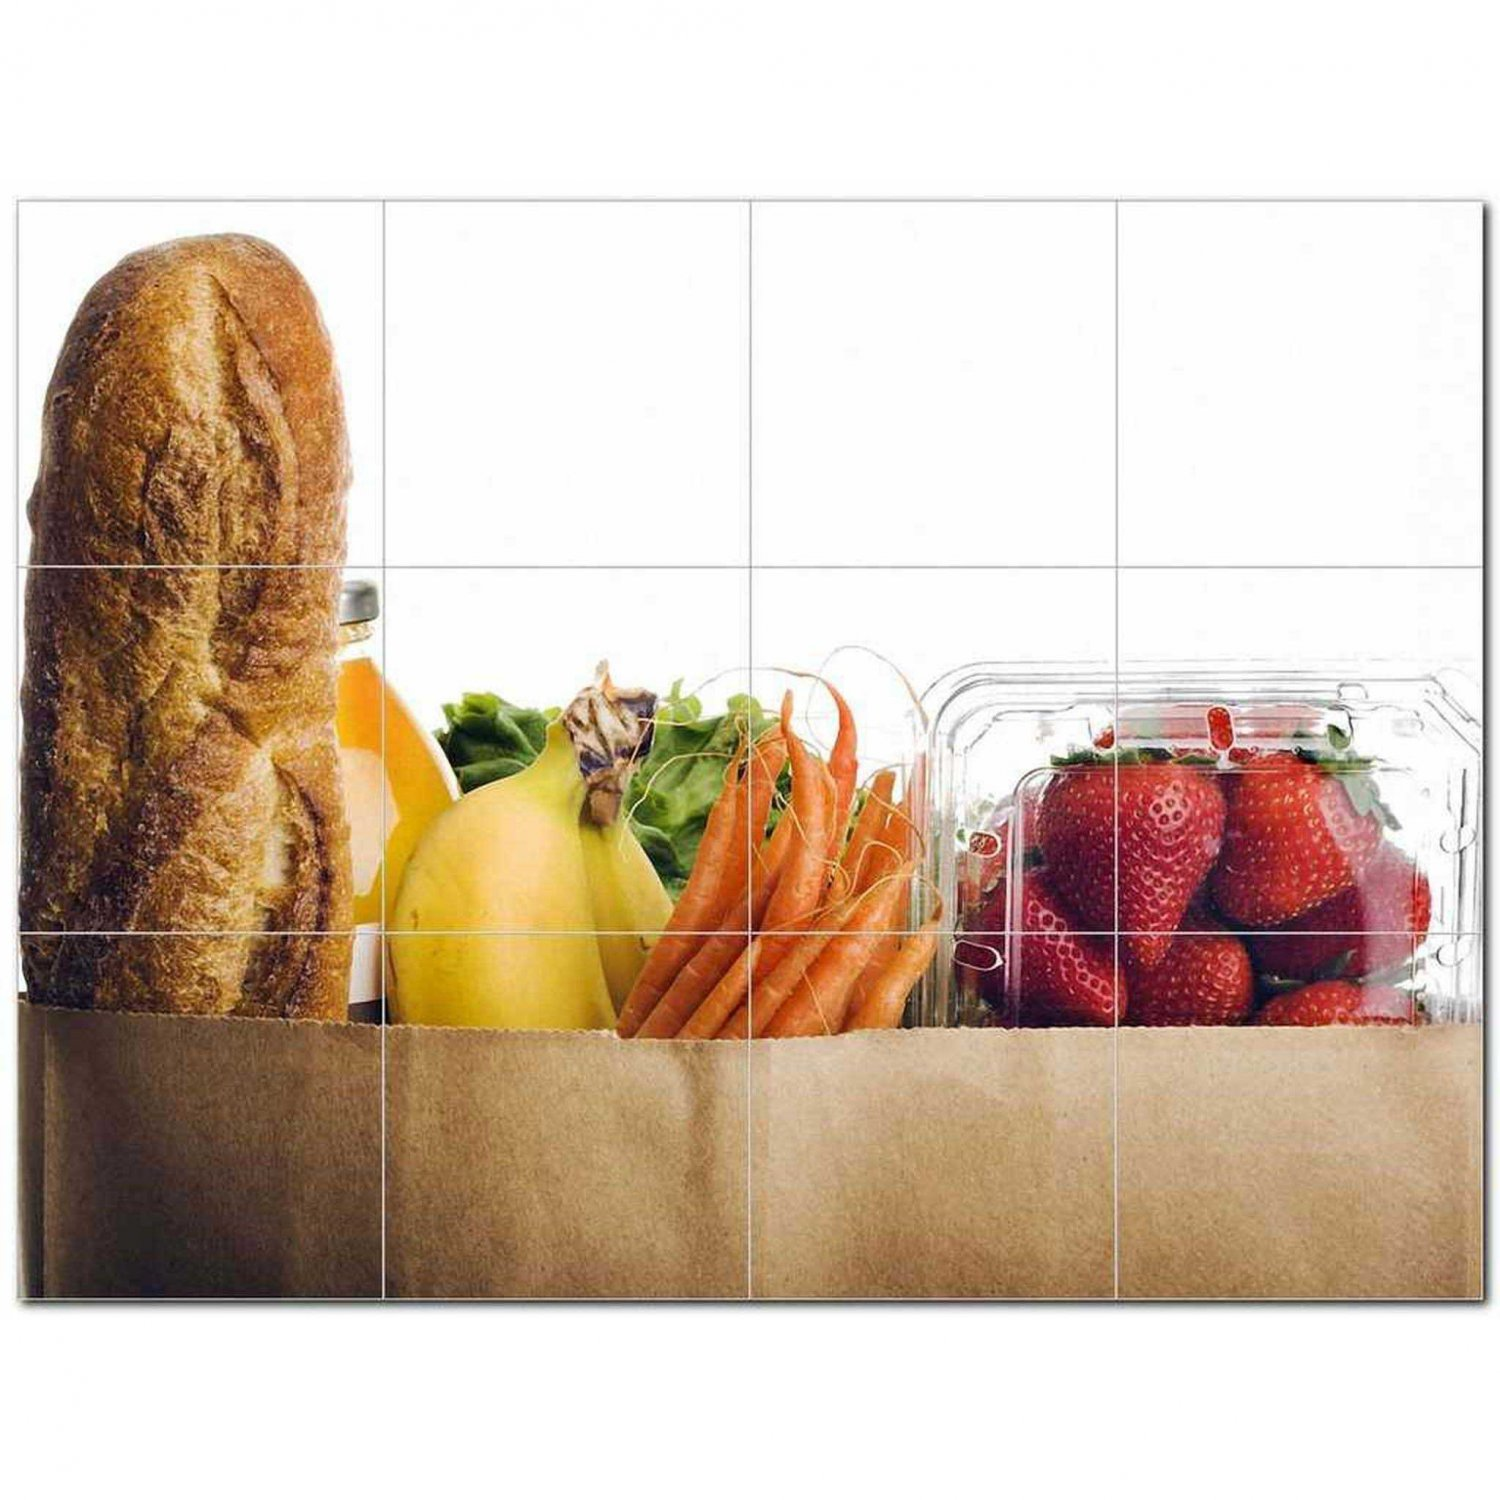 Food Photo Ceramic Tile Mural Kitchen Backsplash Bathroom Shower 405111